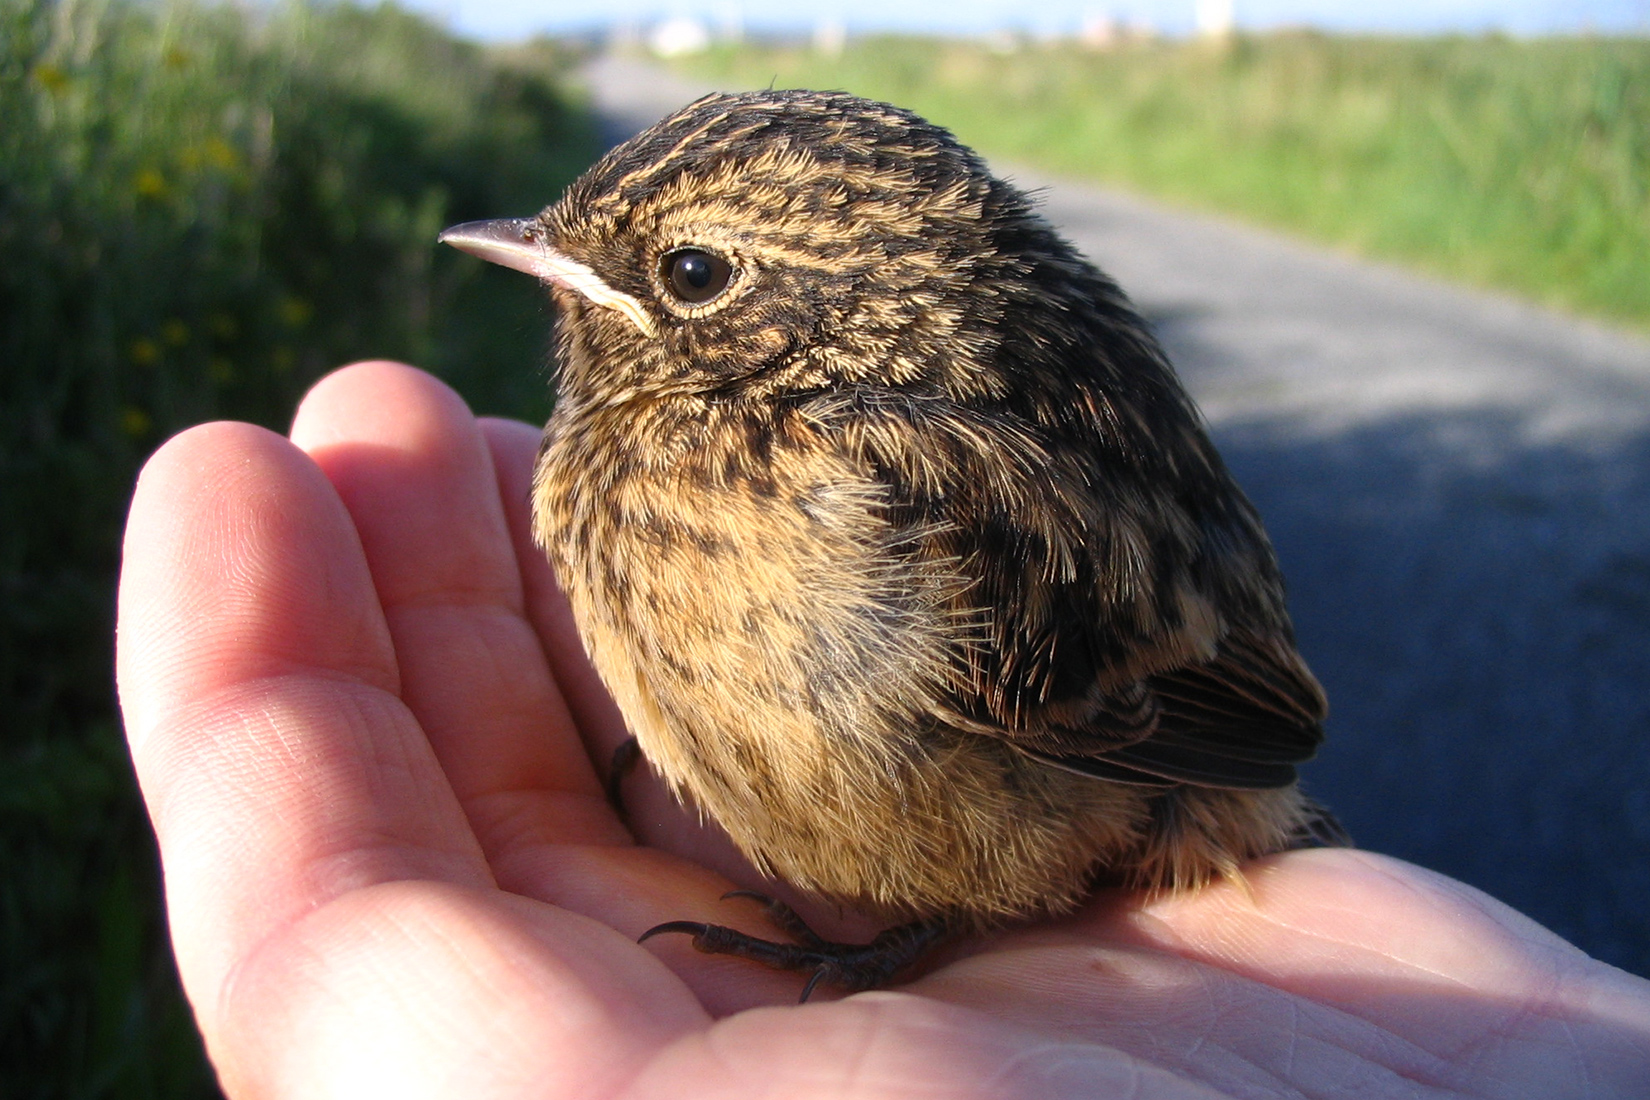 stonechat-chick-in-a-persons-hand